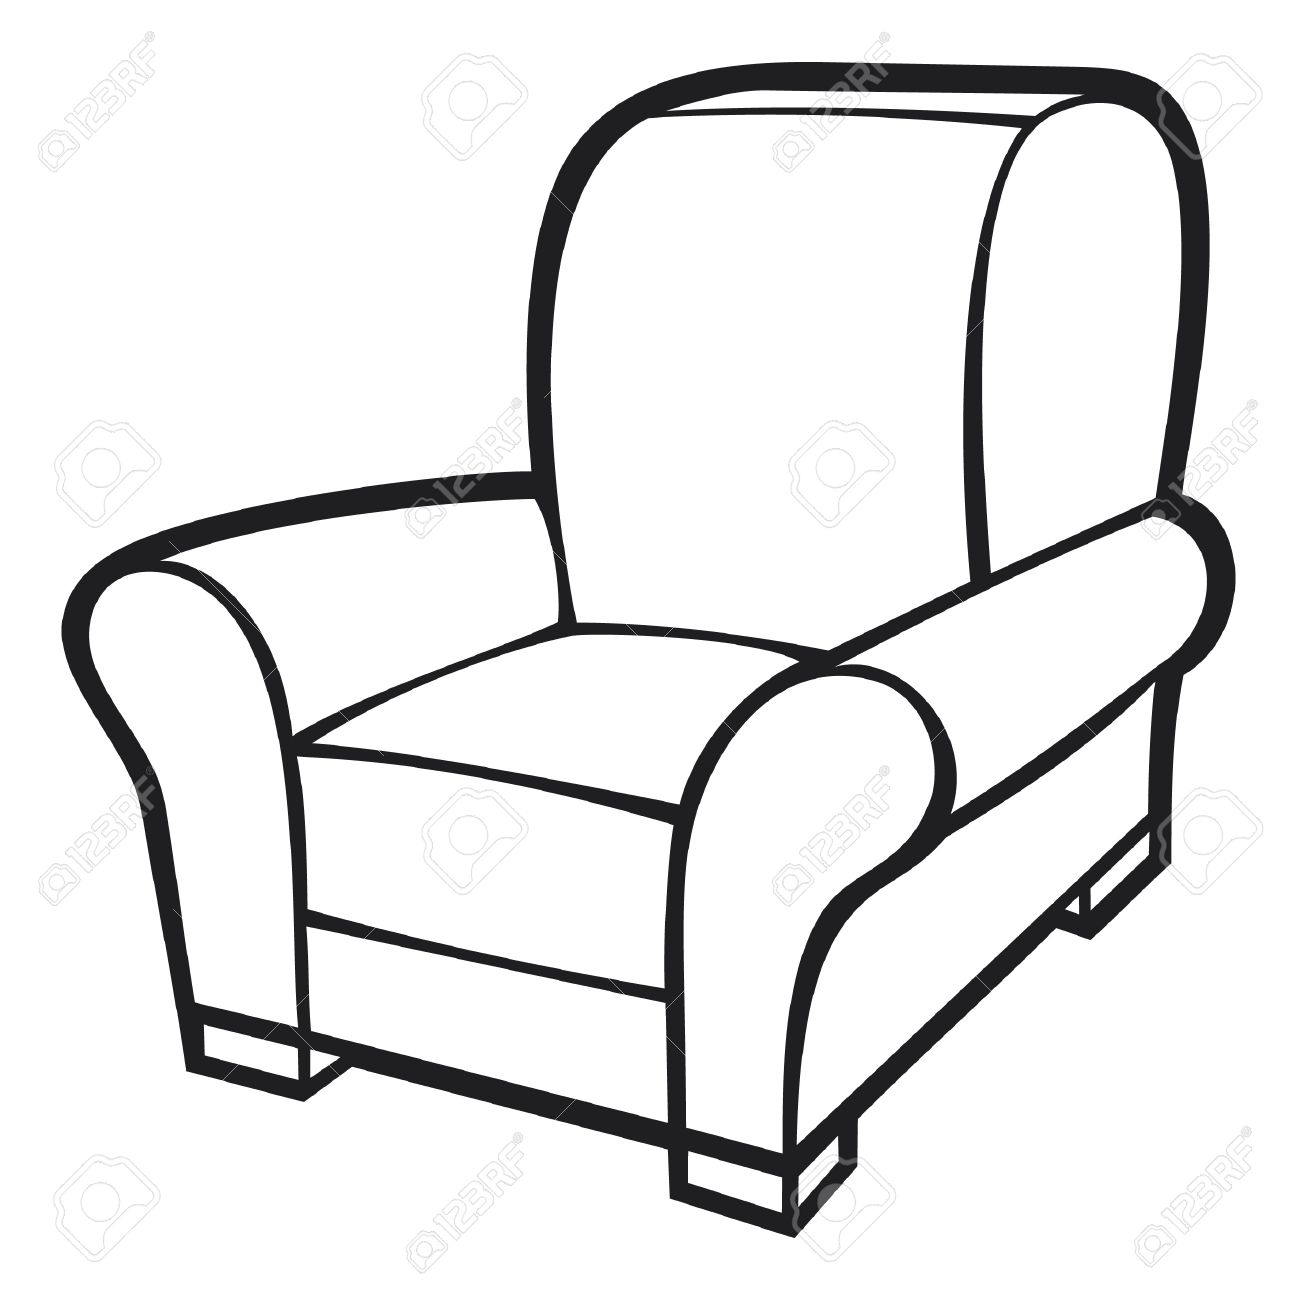 Furniture Clipart | Free download best Furniture Clipart on ...